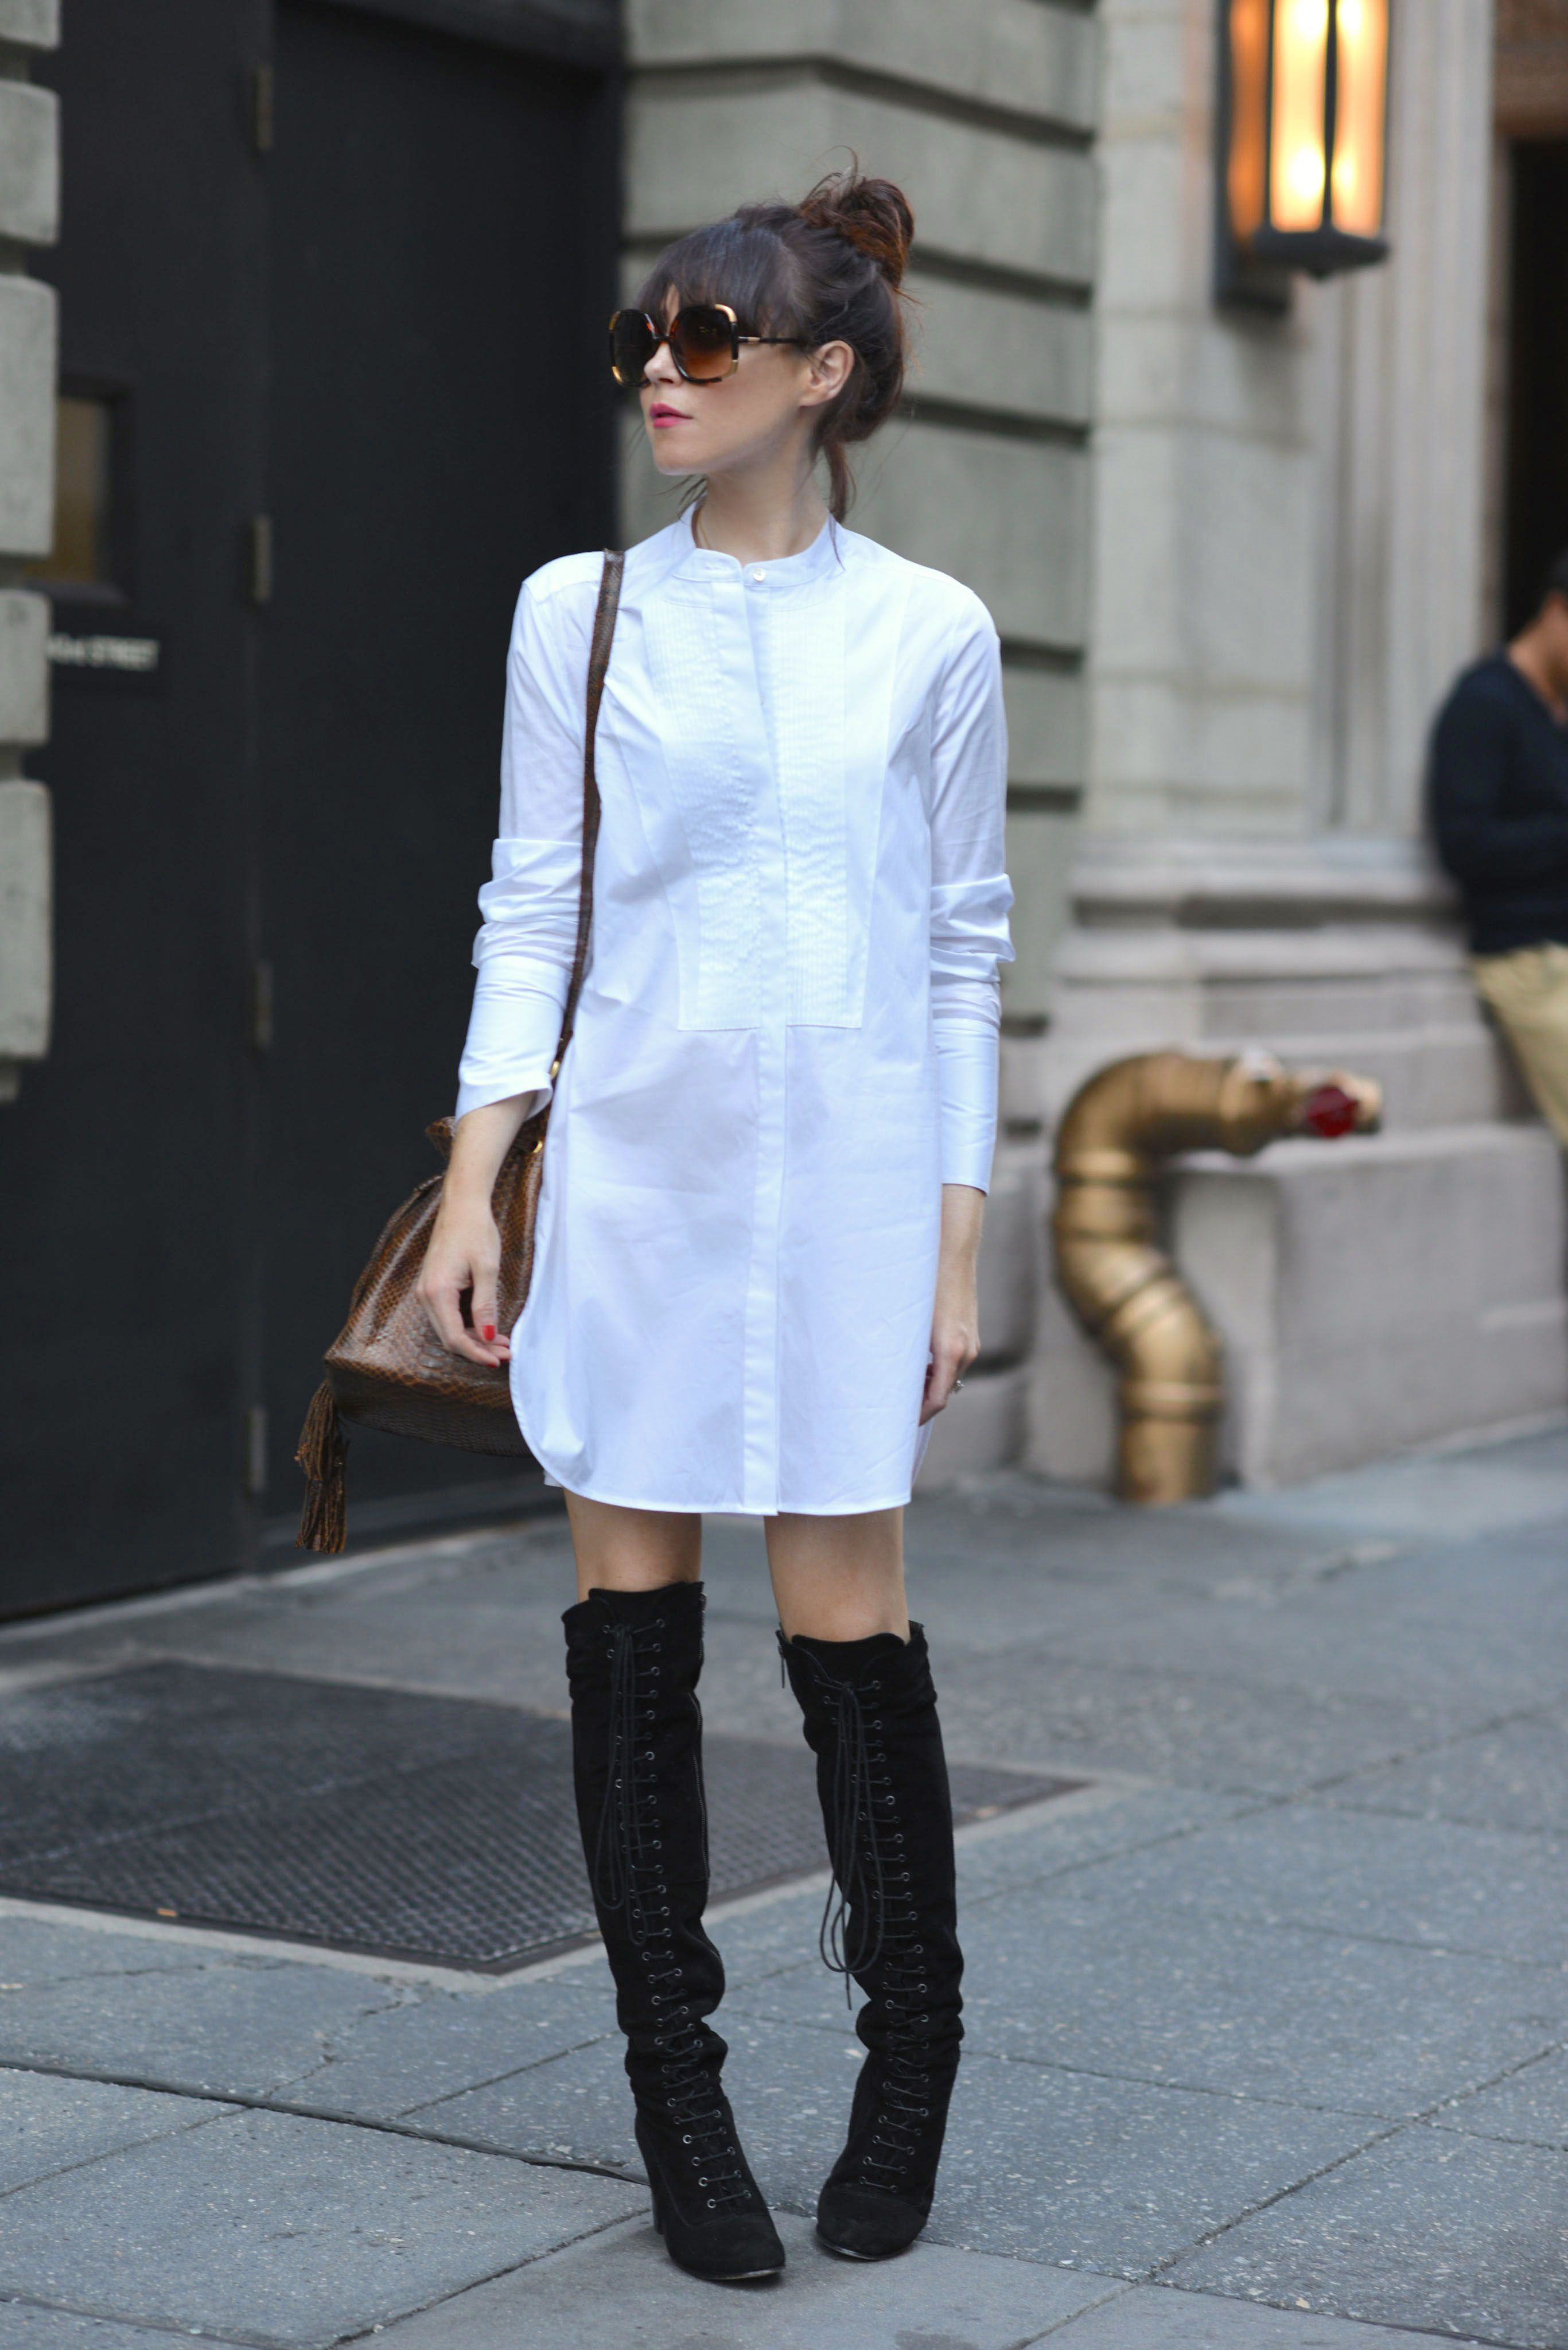 fb94529e012 How to wear a white shirt dress with over-the-knee boots  overthekneeboots   suedeboots  thighthighboots  shirtdress  sunglasses  laceupboots   sisistyling   ...